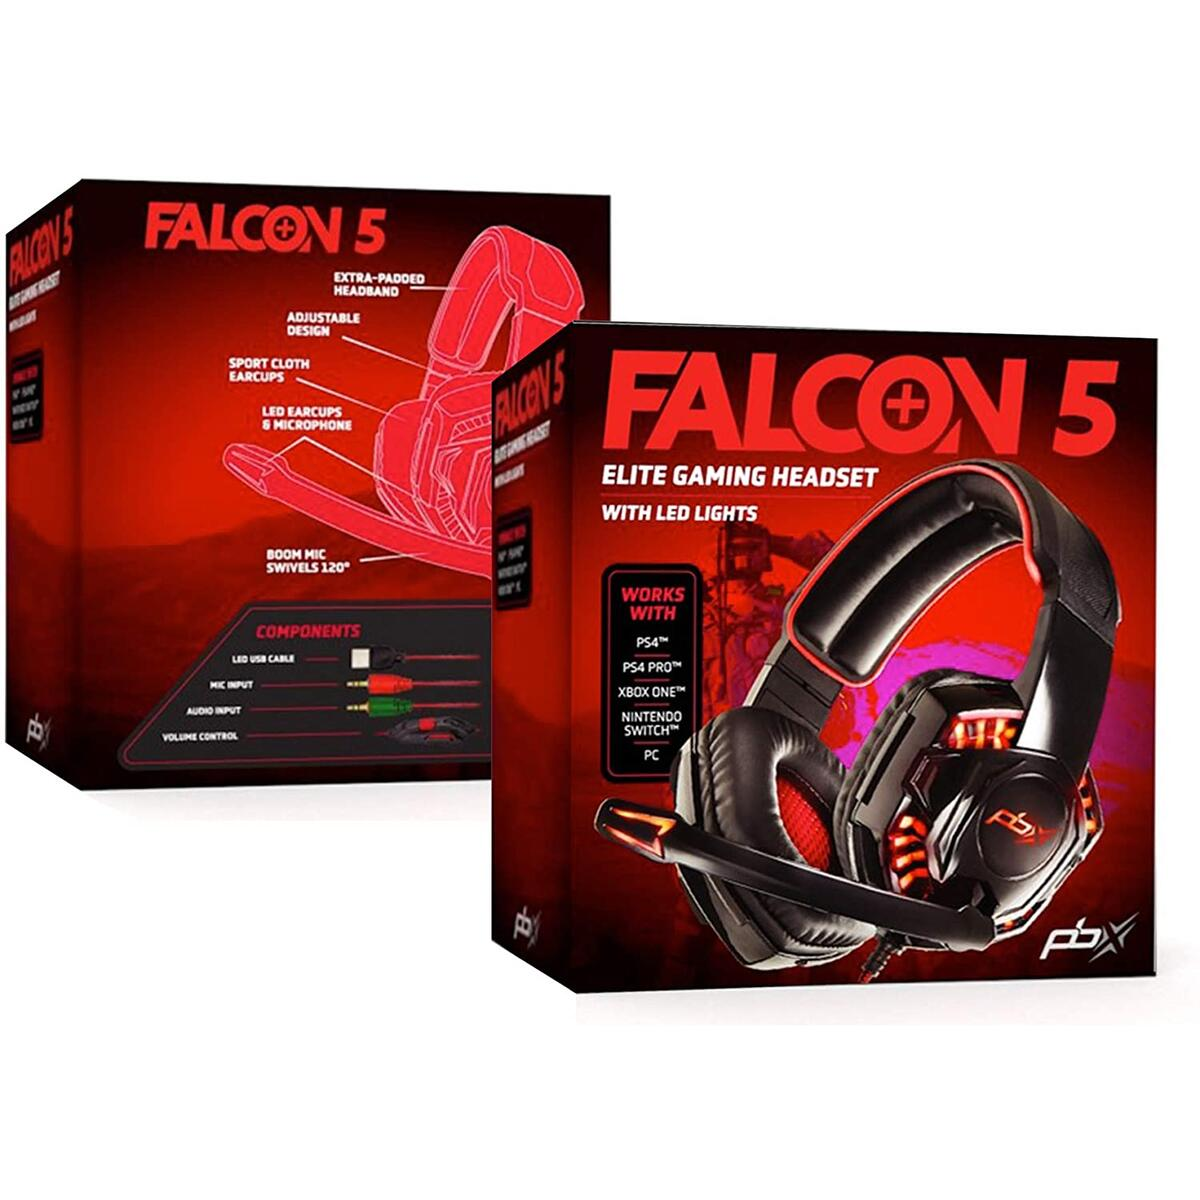 Falcon 5 Elite Gaming Headset, Red LED-Lights, Boom Mic, Noise-Reducing Tech, Sport Cloth Earcups, Padded Headband for Computer & Gaming Consoles